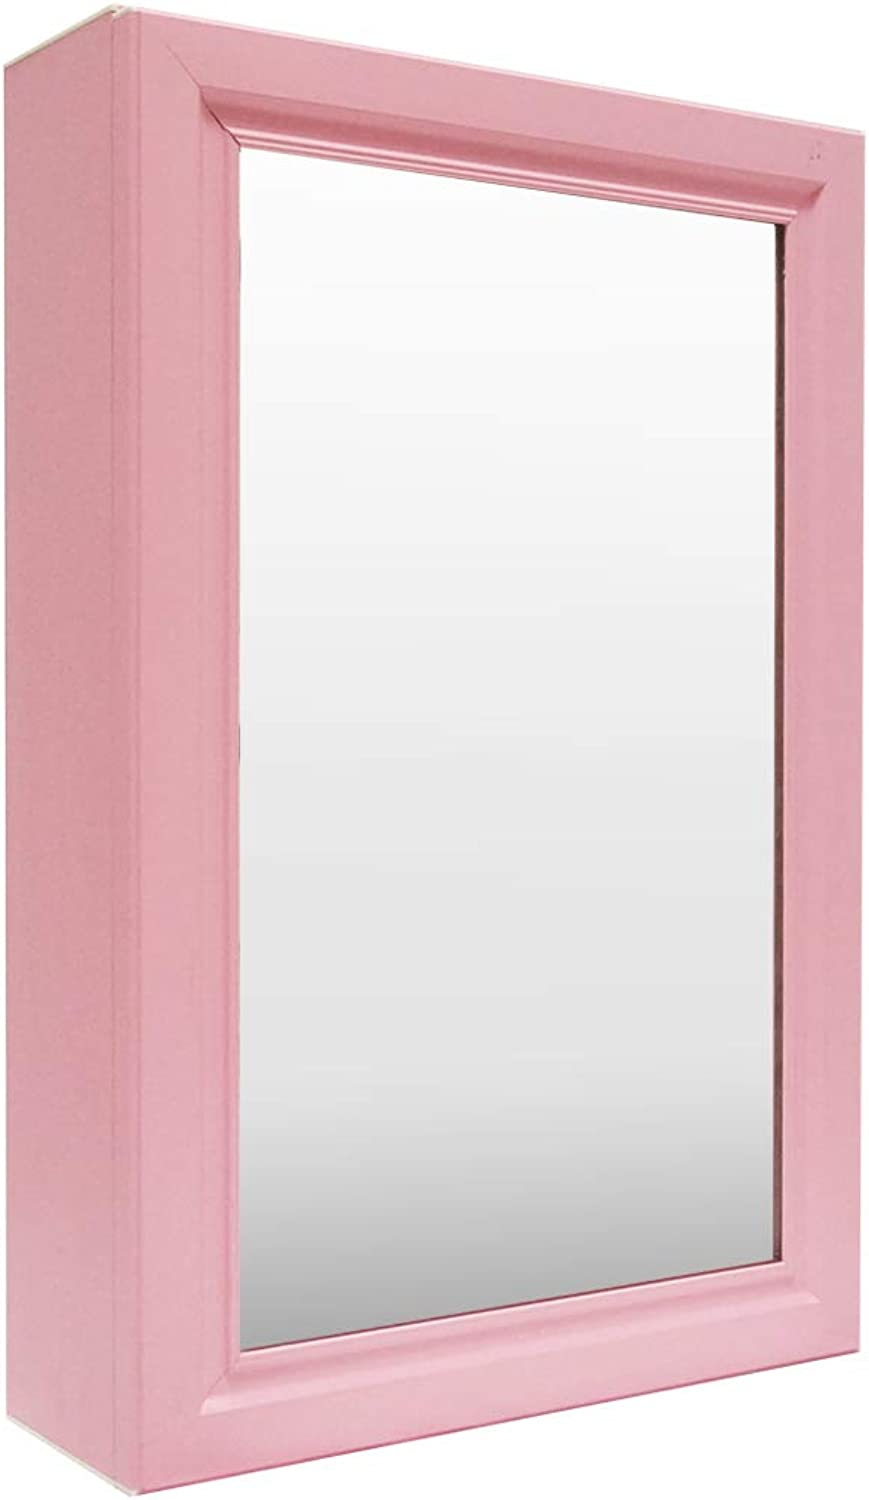 Tamyoo Mirrored Medicine Cabinet Aluminum Cabinet with Framed Mirrored Door Bathroom Vanity Mirror(Pink)